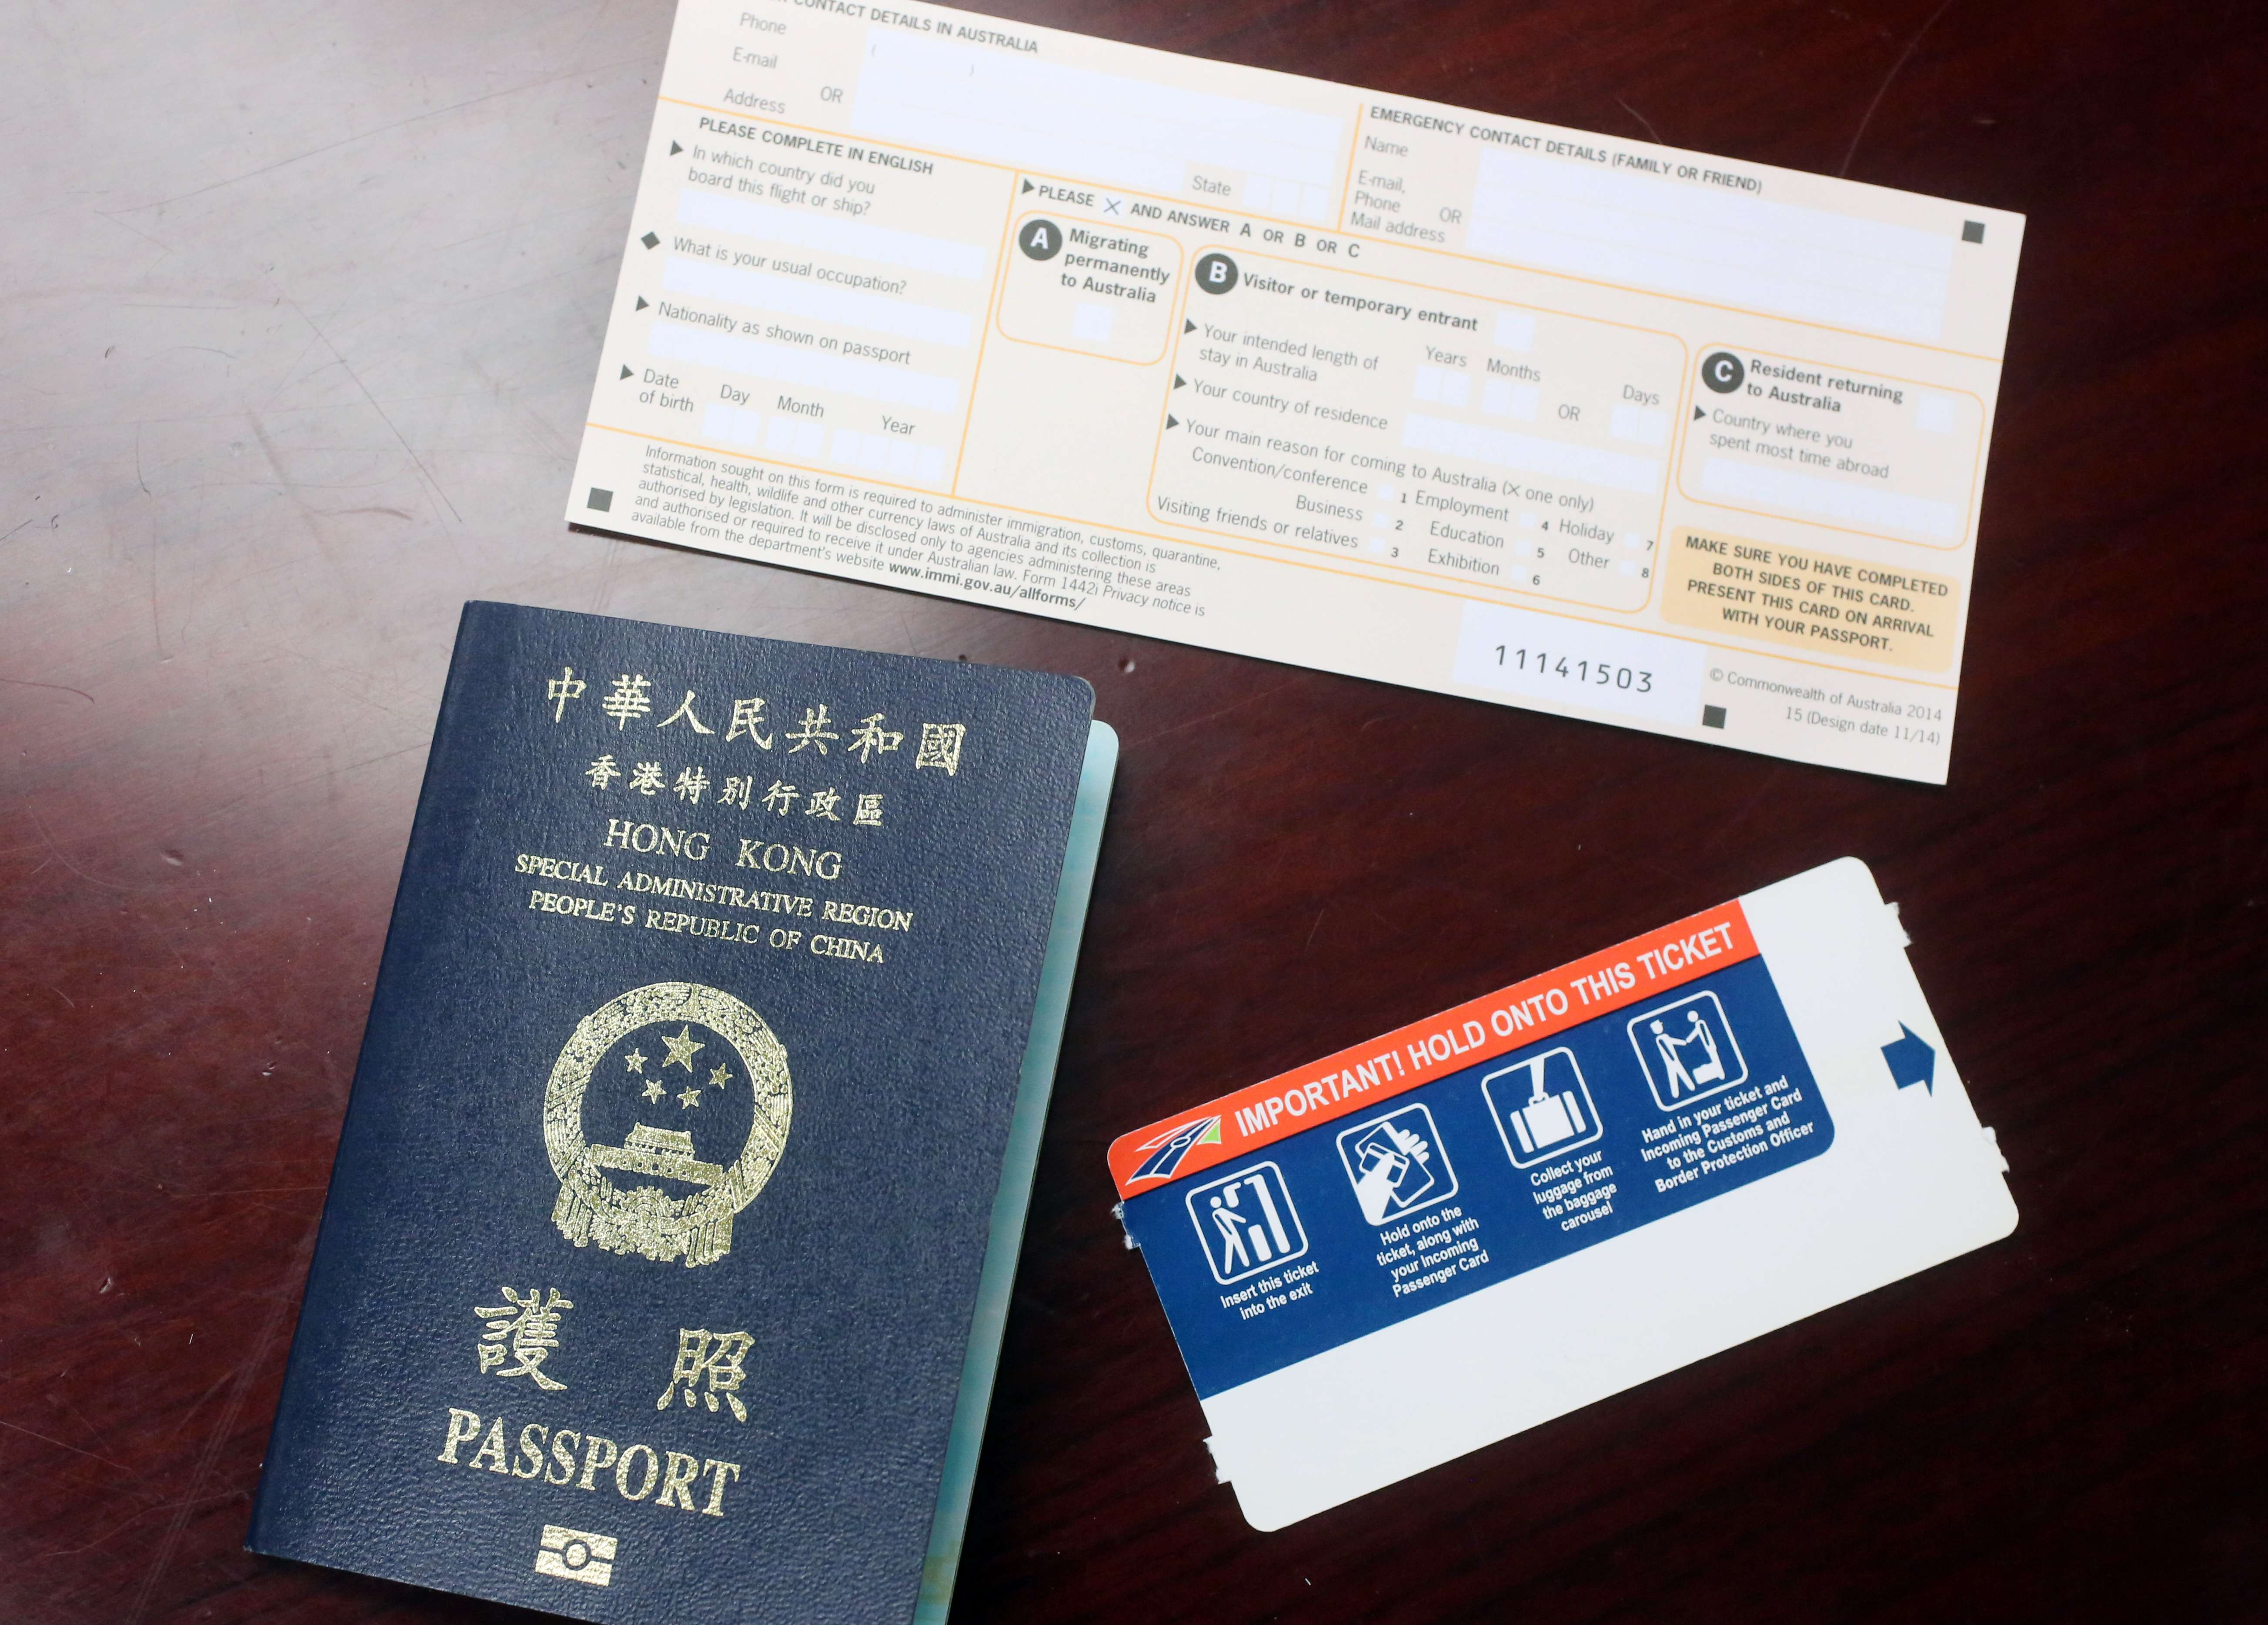 hongkongers visiting australia now eligible for automated